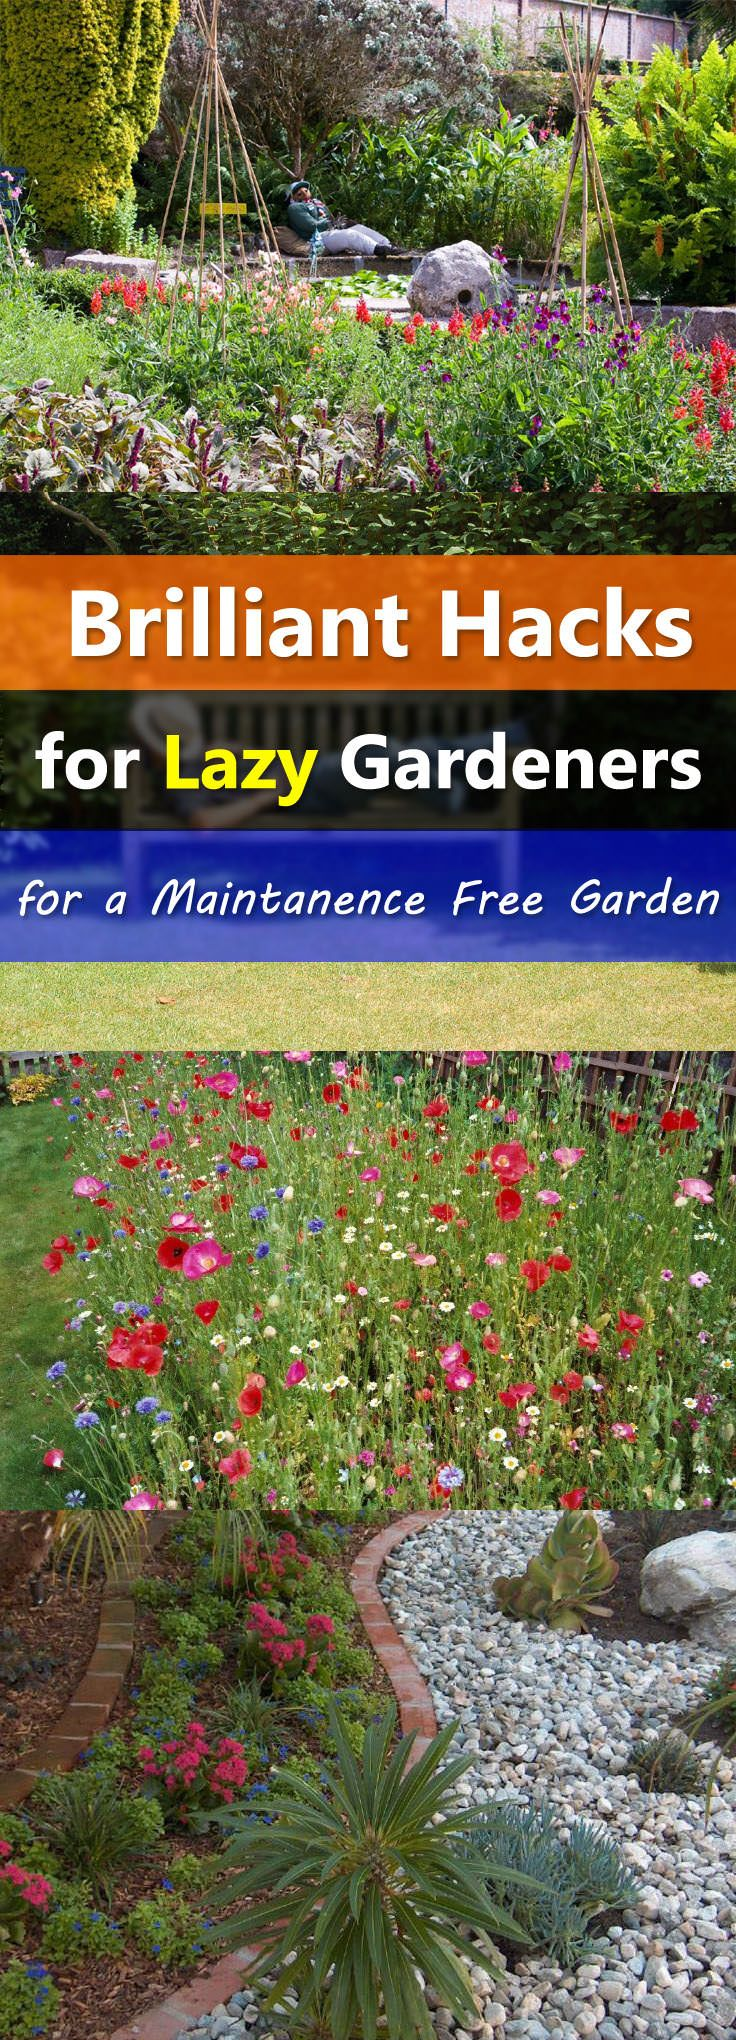 Maintenance Free Garden Ideas raised vegetable beds are simple to make and easy to maintain use this method and Gardening Hacks For The Lazy Gardeners To Make A Low Maintenance Garden